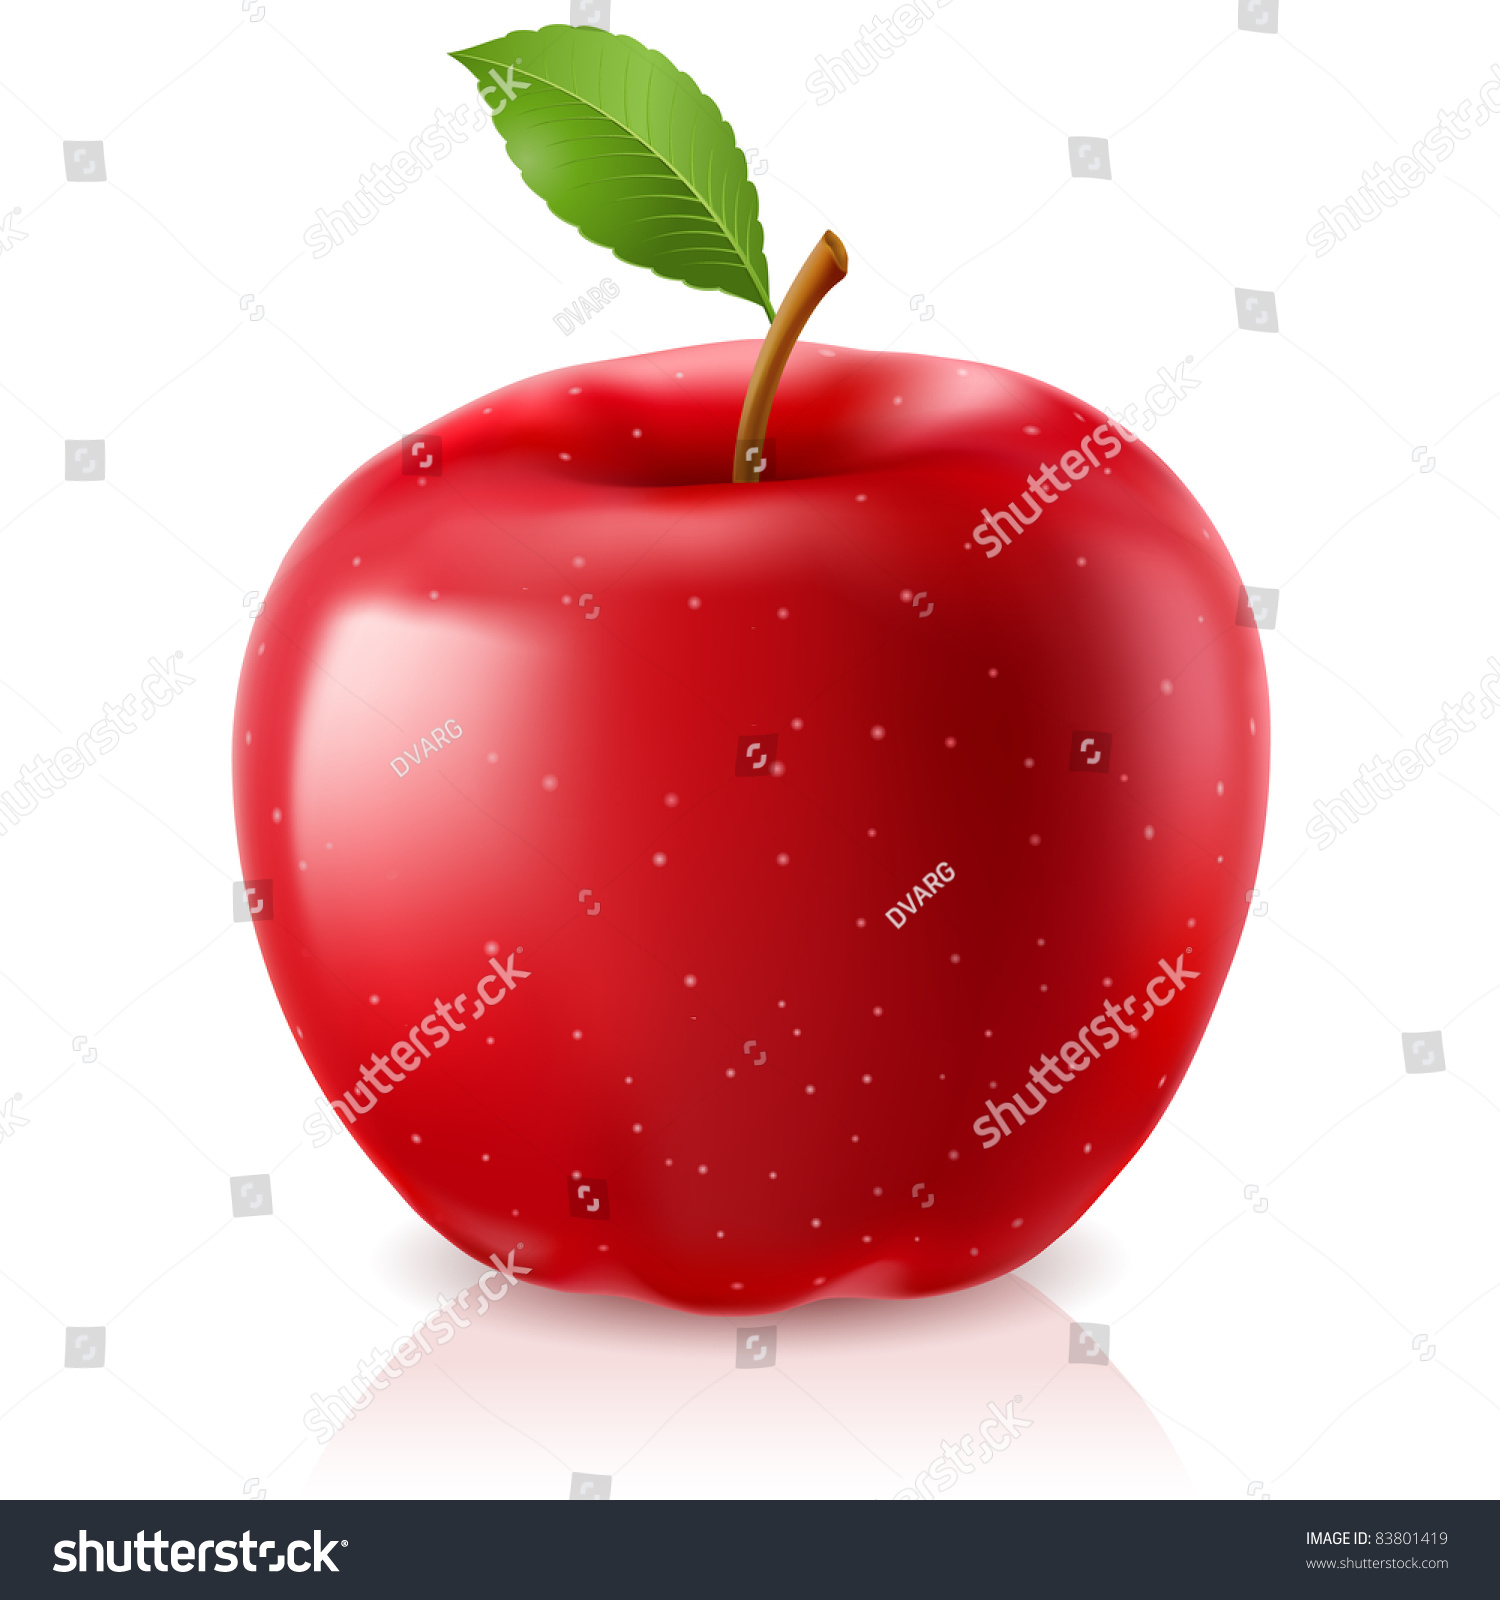 delicious green apple illustration - photo #14